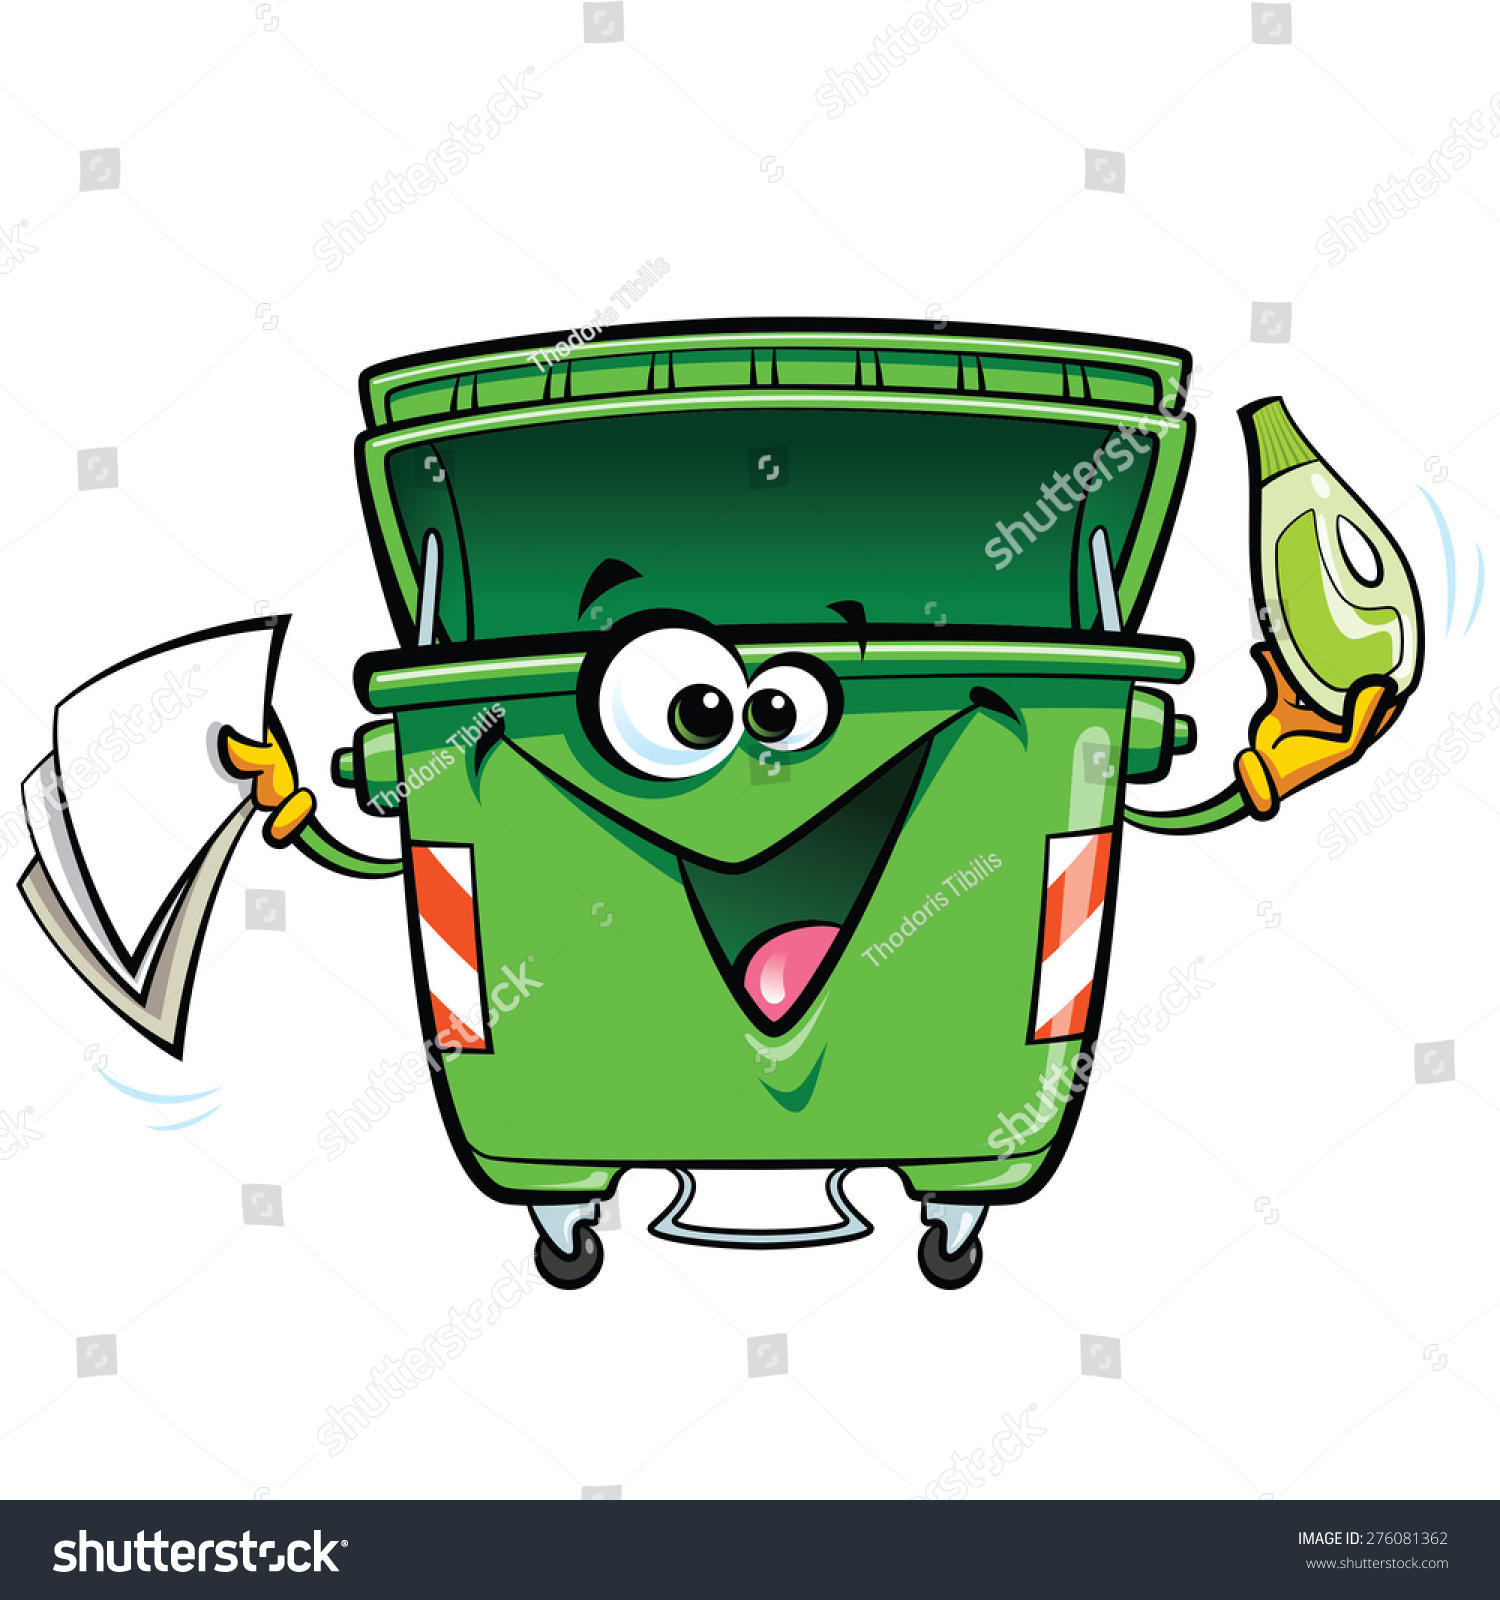 cartoon image of how to keep environment clean